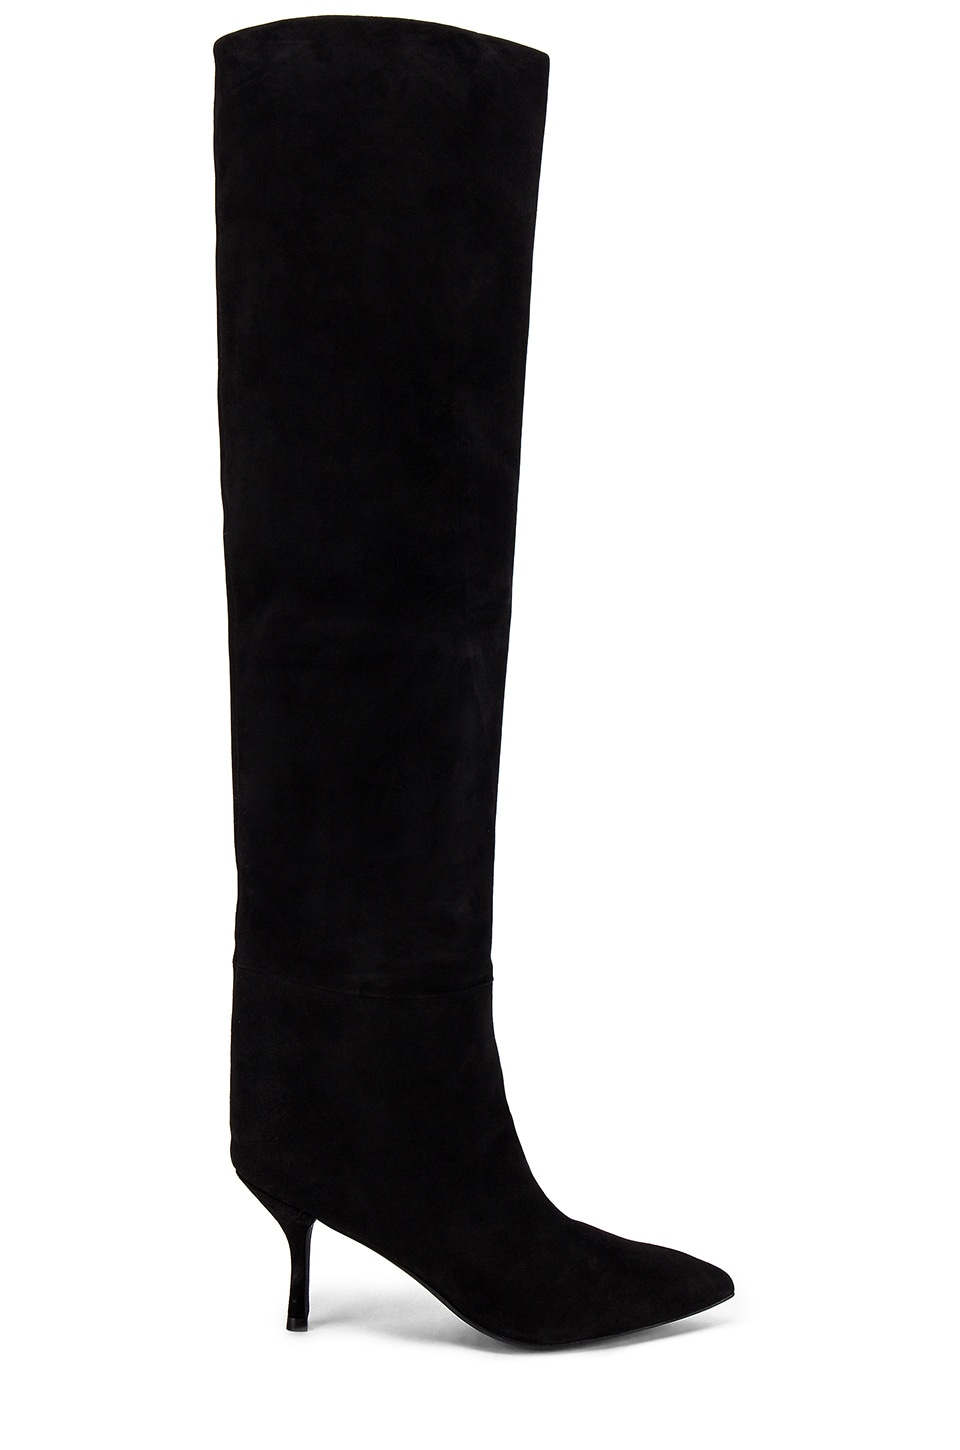 Stuart Weitzman Millie Boot in Black